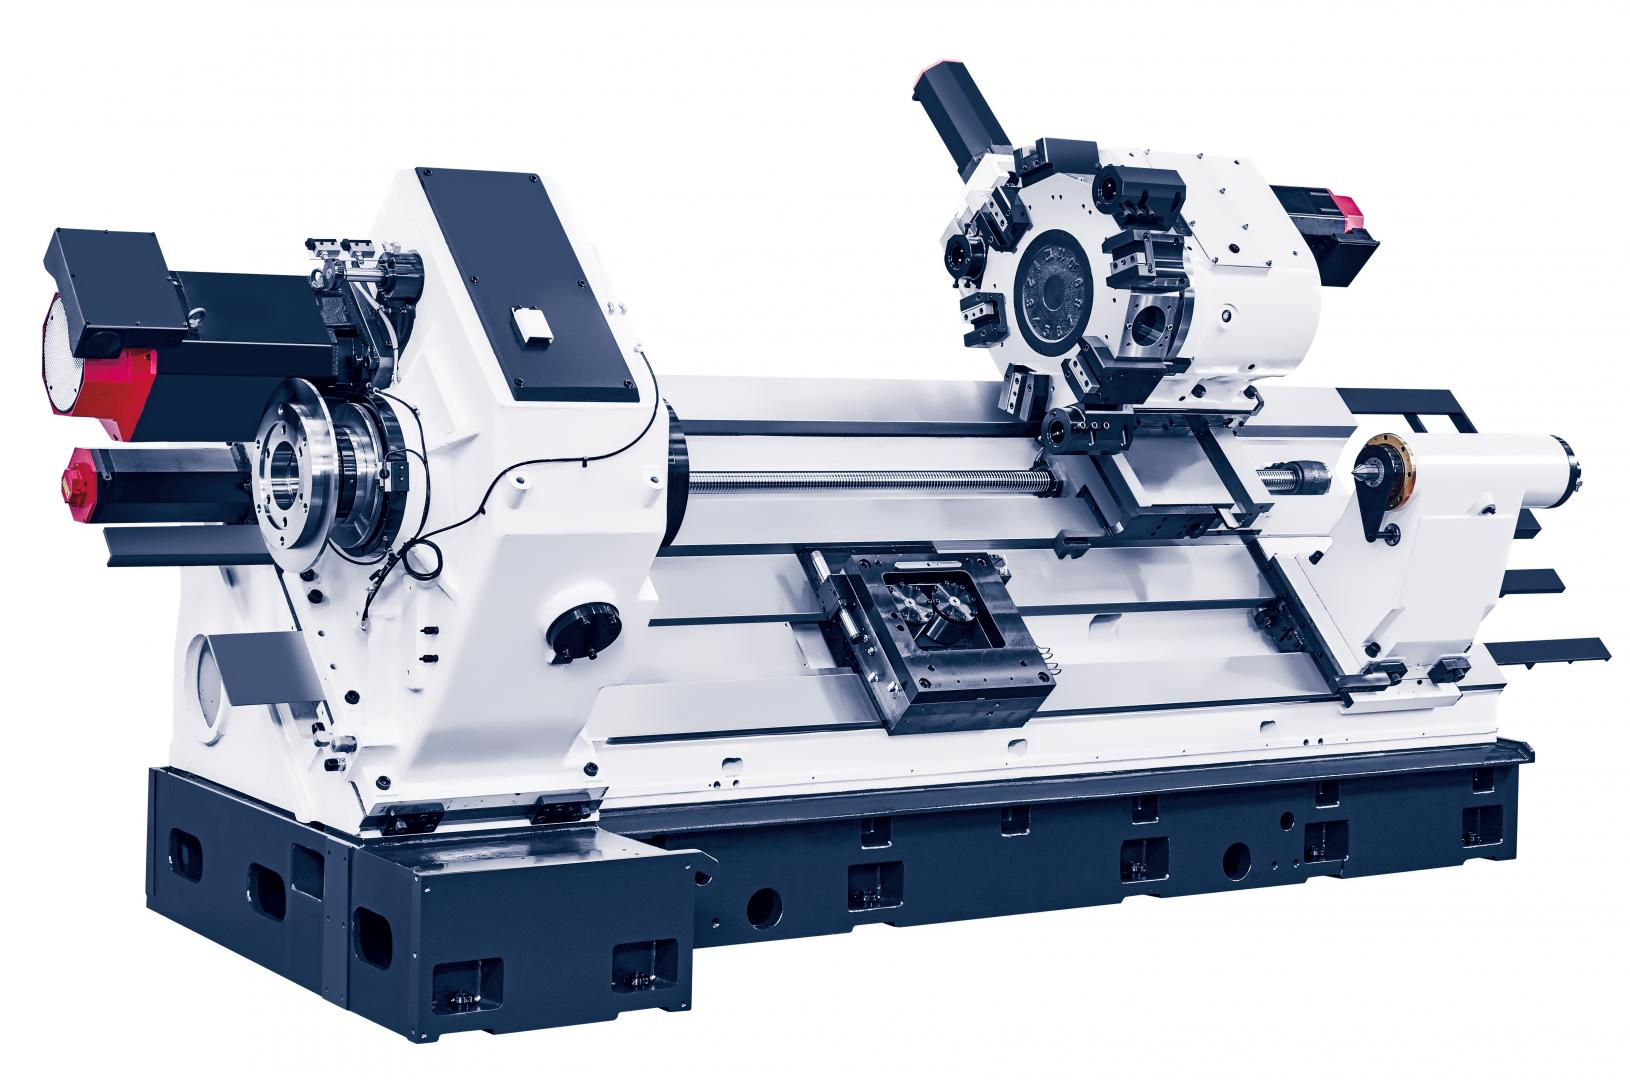 Hi-TECH 700 - Horizontal lathe with box guideways for Ø600 mm chucks